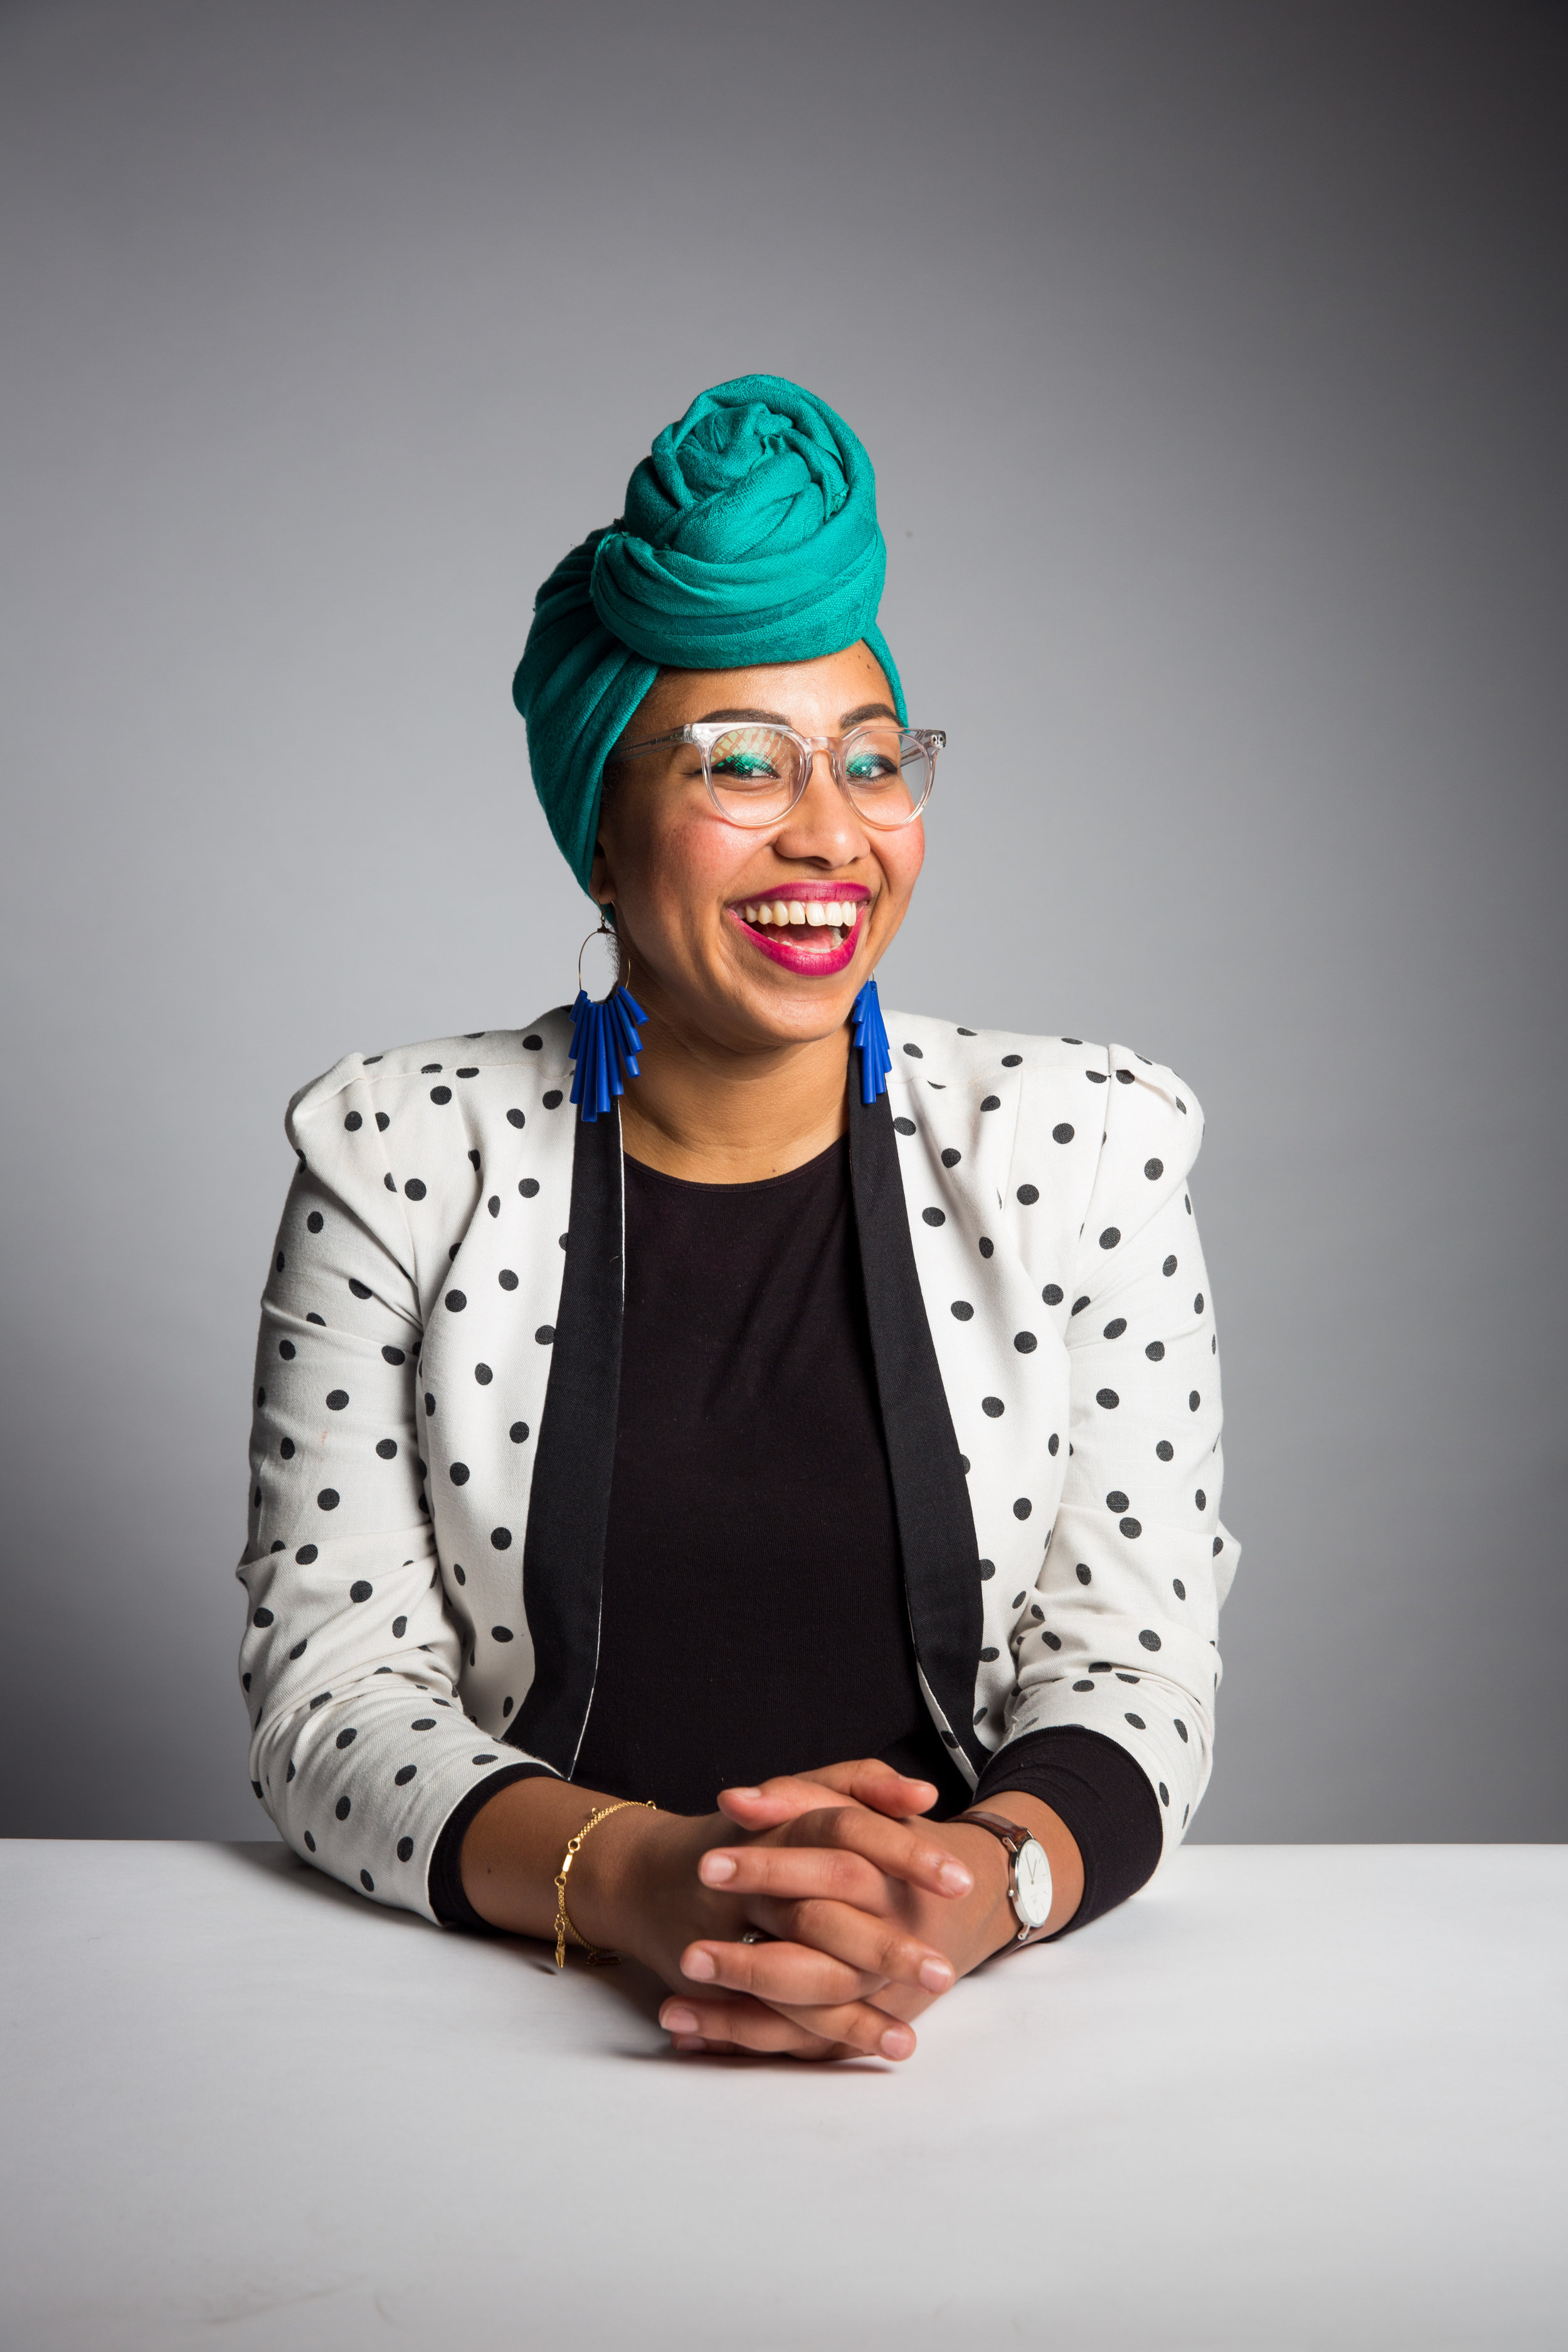 Yassmin Abdel-Magied and Mumtaza Co-Founders will speak to hundreds of secondary school aged girls at the girledworld Summit 2017